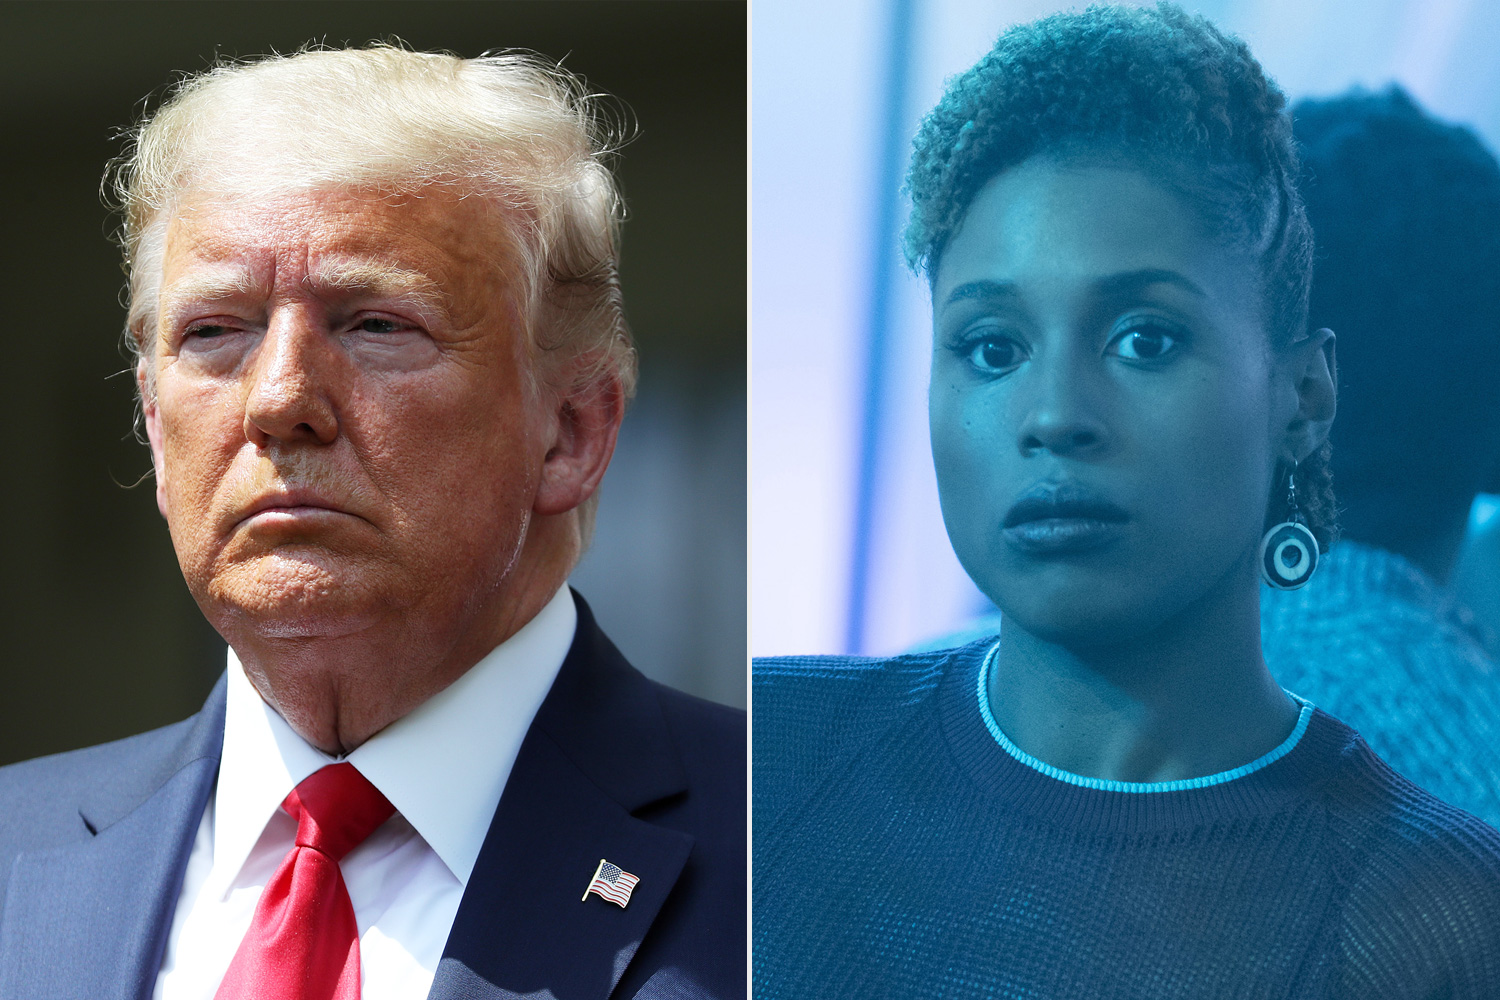 Donald Trump Issa Rae Insecure Twitter